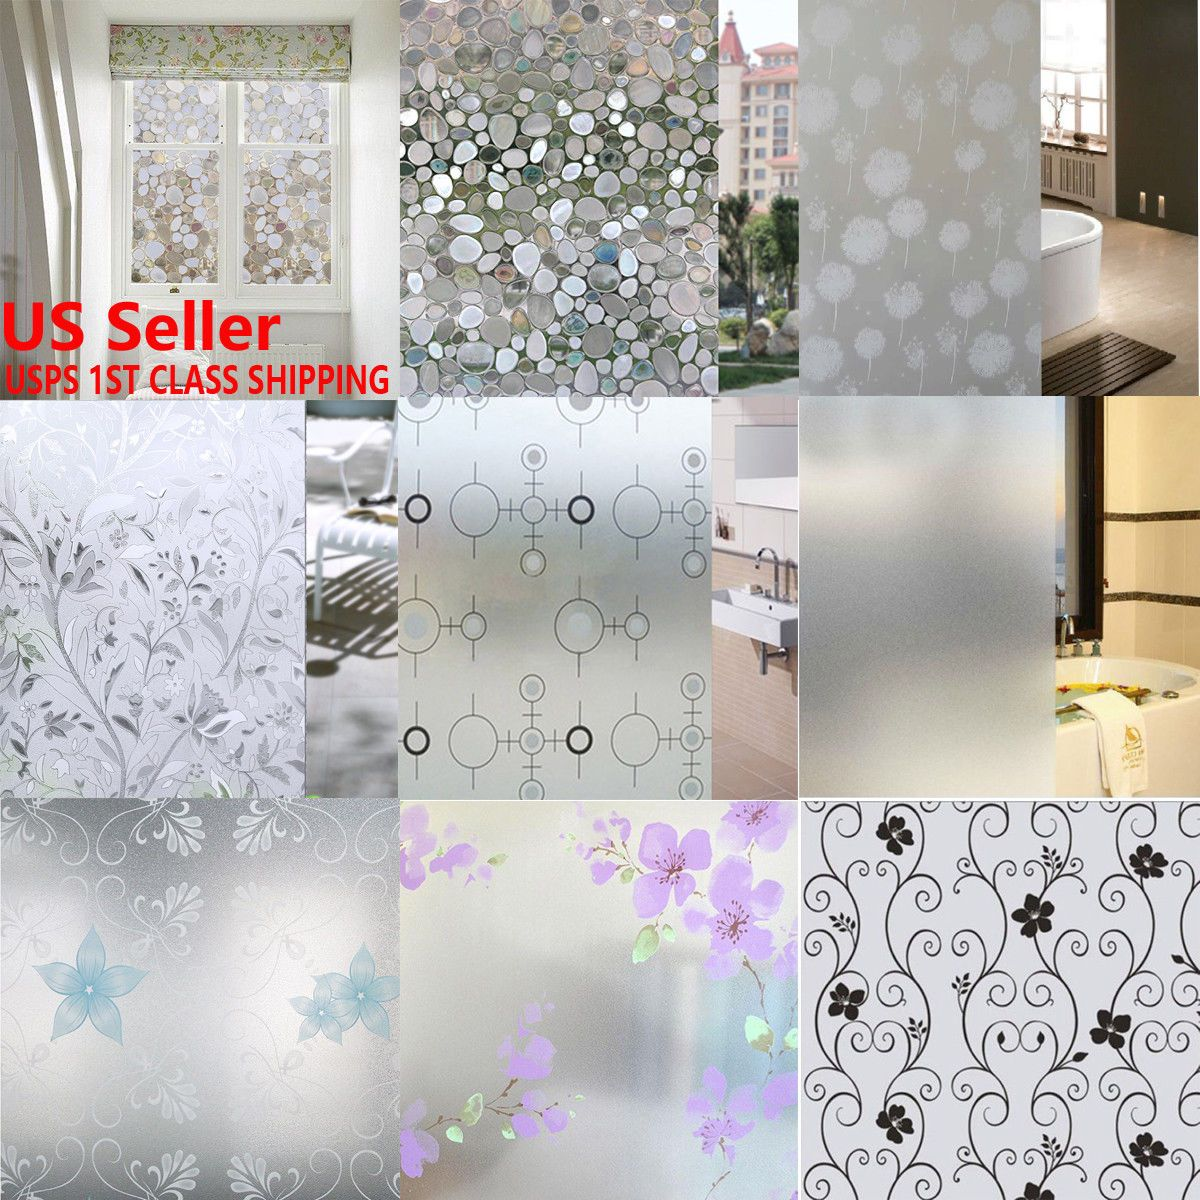 Waterproof Frosted Privacy Home Bathroom Window Glass Self-Adhesive ...